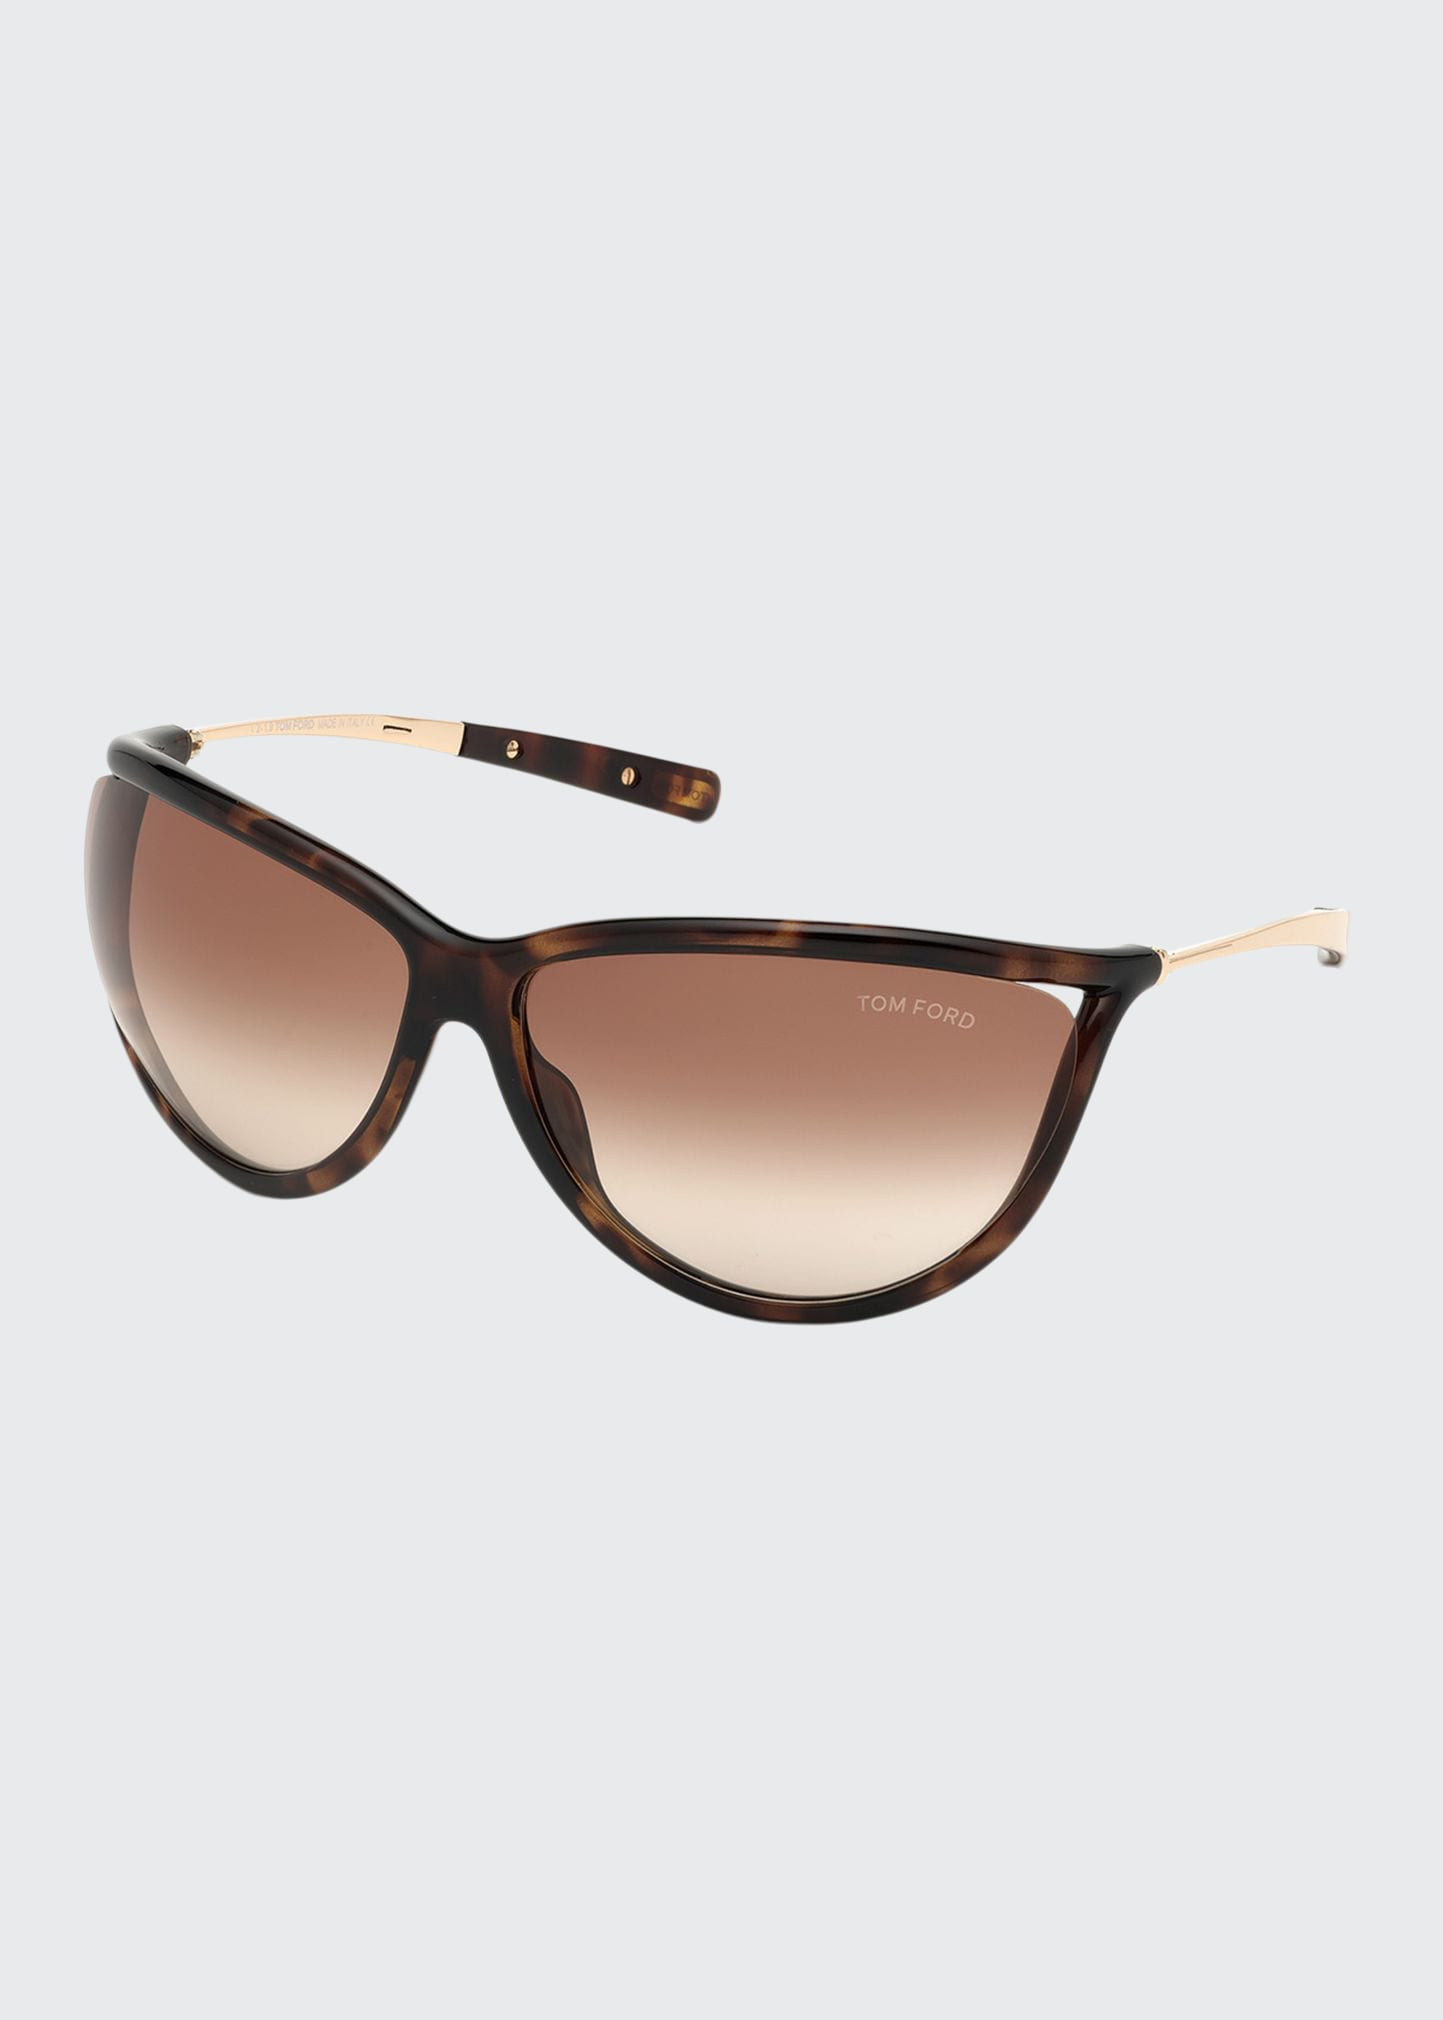 TOM FORD GRADIENT SHIELD ACETATE SUNGLASSES